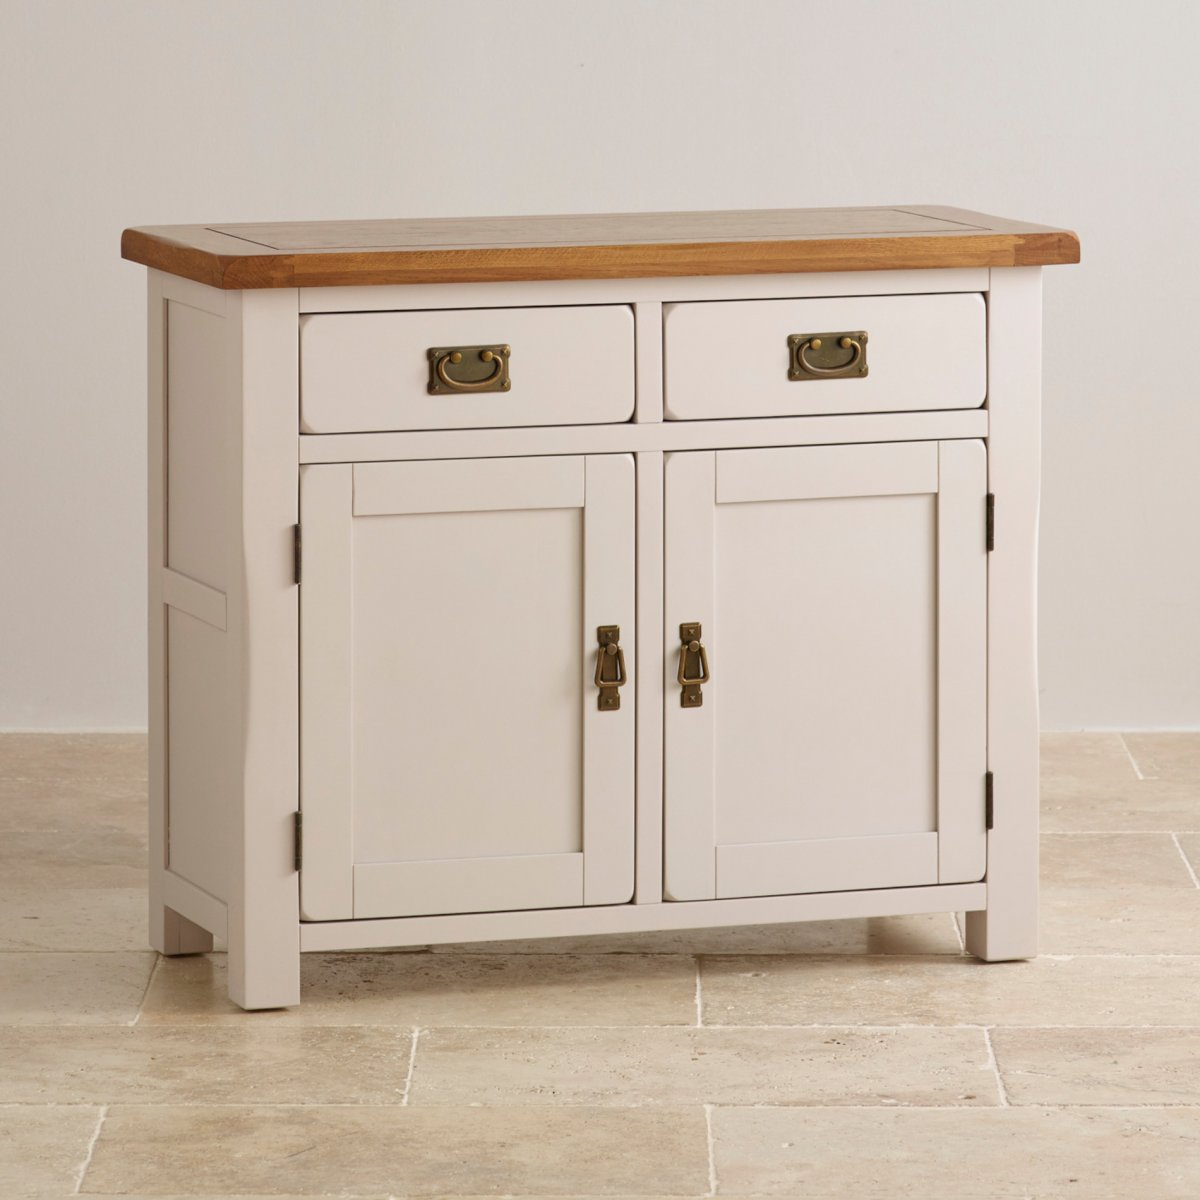 Kemble small painted sideboard in rustic solid oak for Furniture board